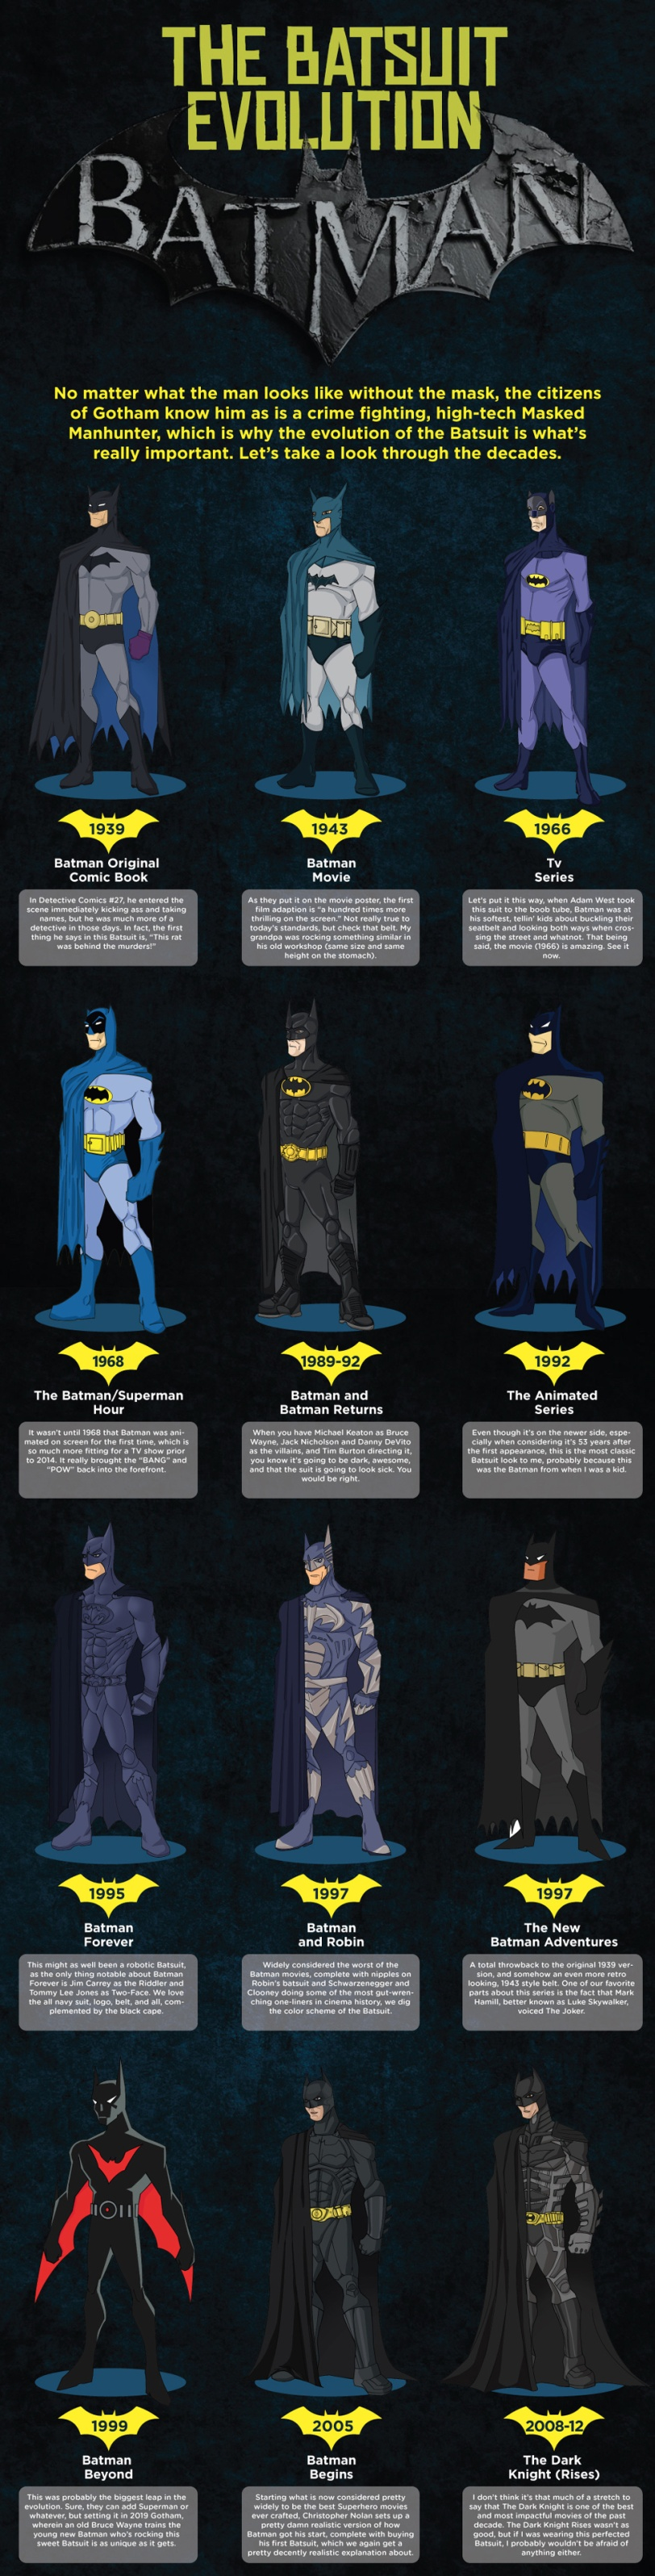 The Batsuit Evolution by Stork Weekly